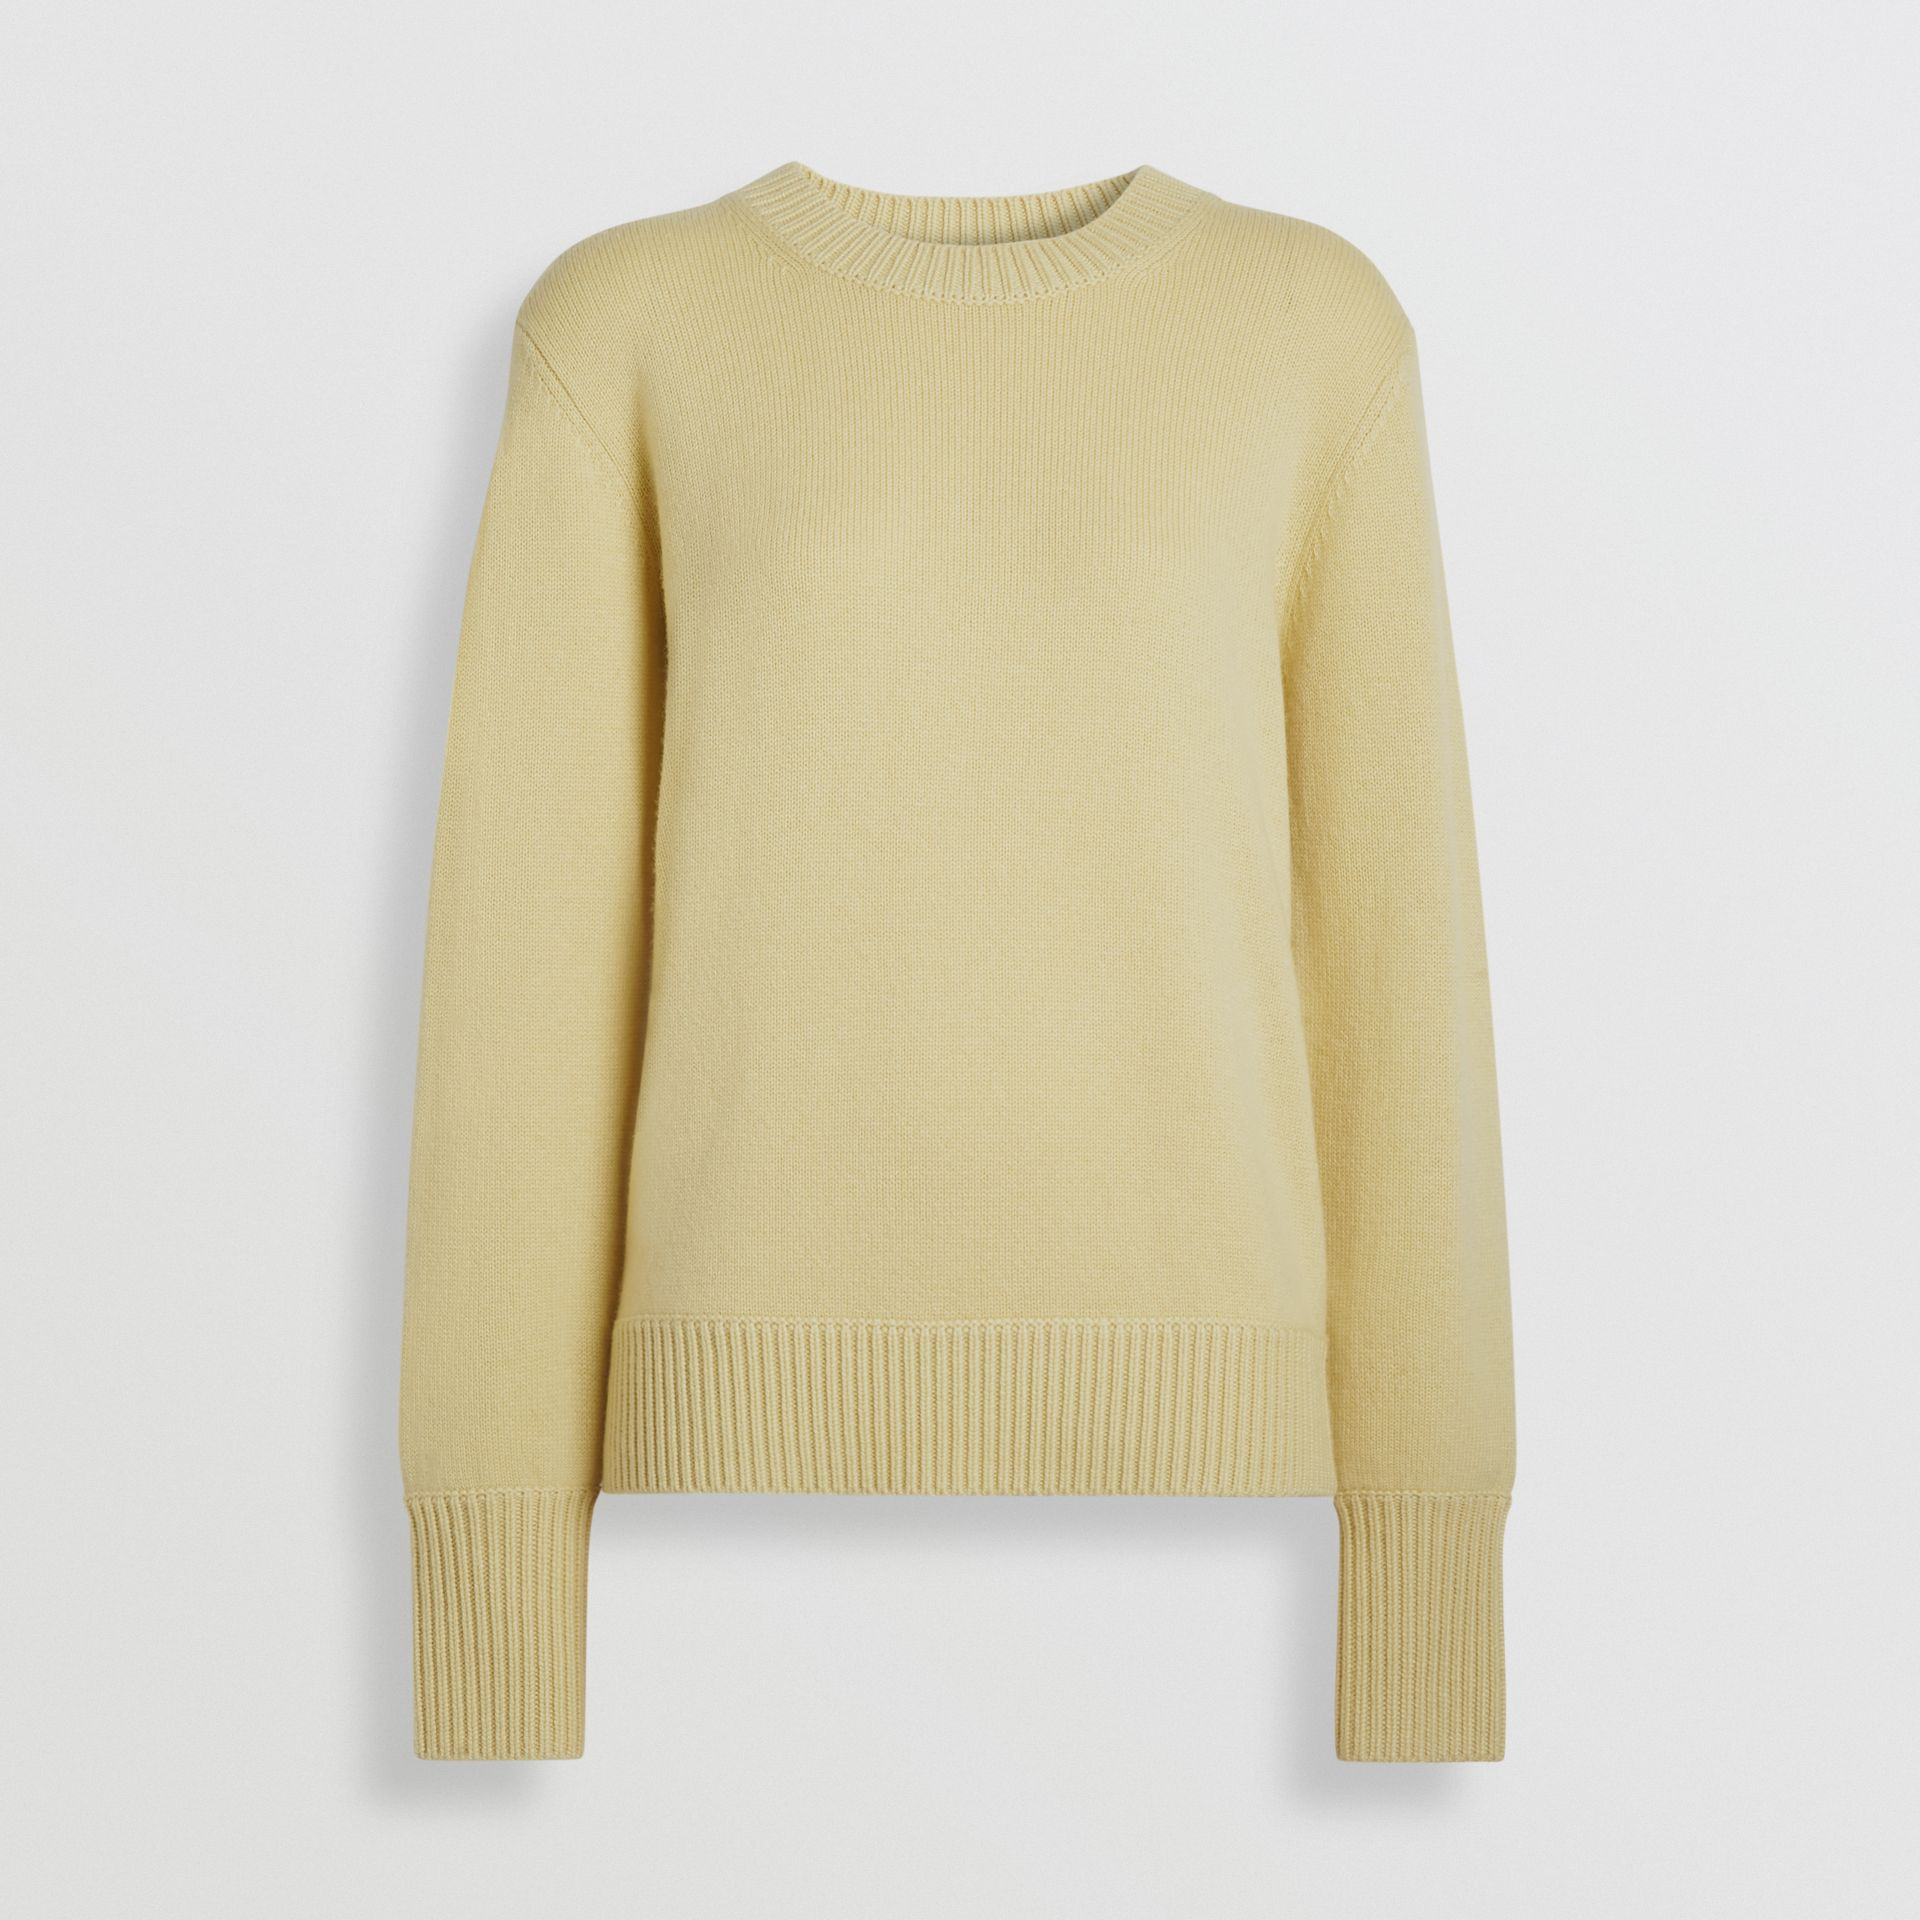 Archive Logo Appliqué Cashmere Sweater in Dusty Yellow - Women | Burberry - gallery image 3